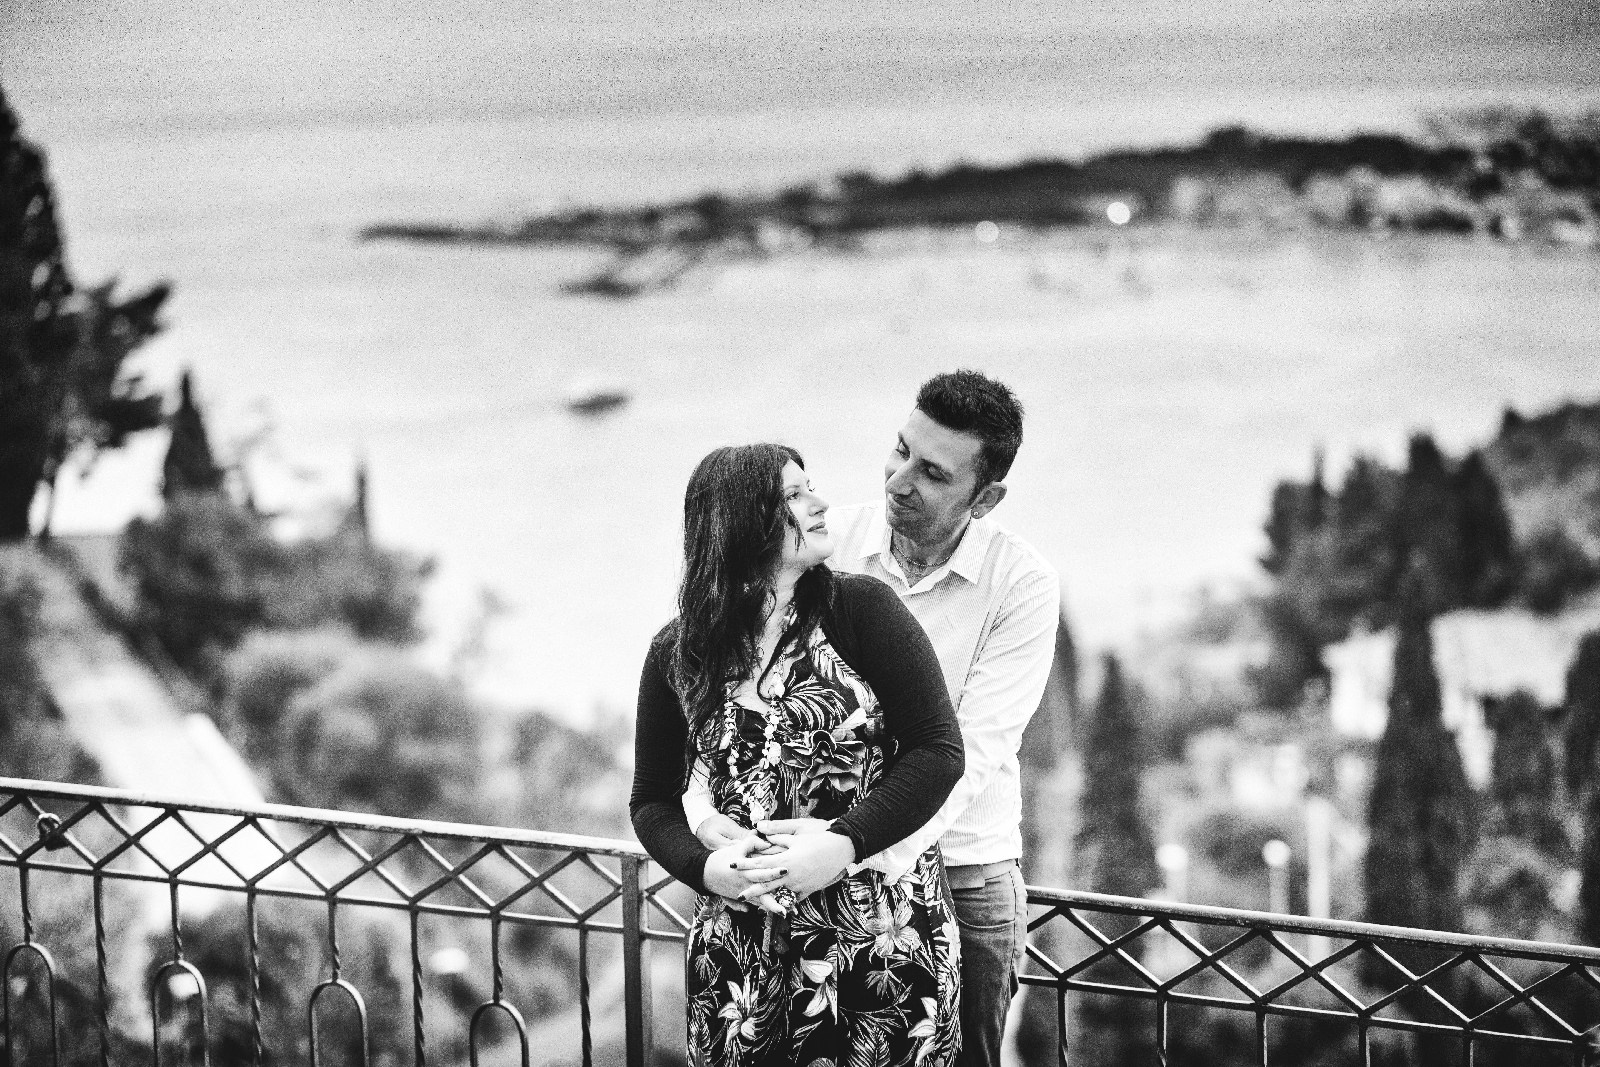 122-2018-09-22-Engagement-Alessandra-e-Igor-Pizzone-zoom-043-Edit